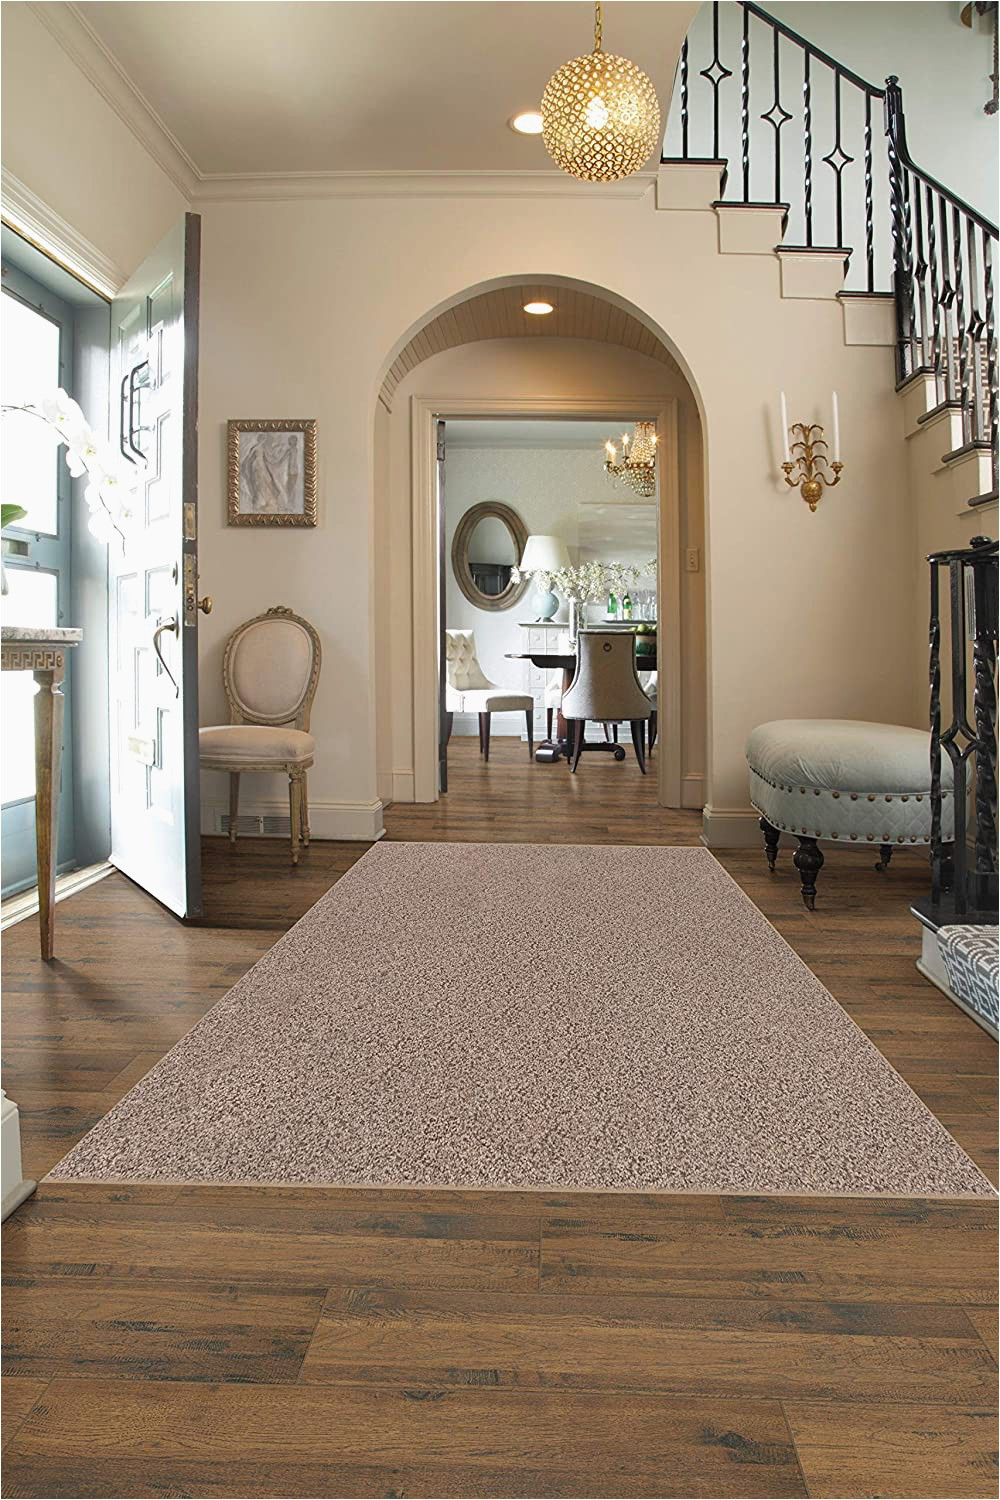 12 X 12 Square area Rug Square 12 X12 Indoor area Rug Oyster Bay 32oz Plush Textured Carpet for Residential or Mercial Use with Premium Bound Polyester Edges